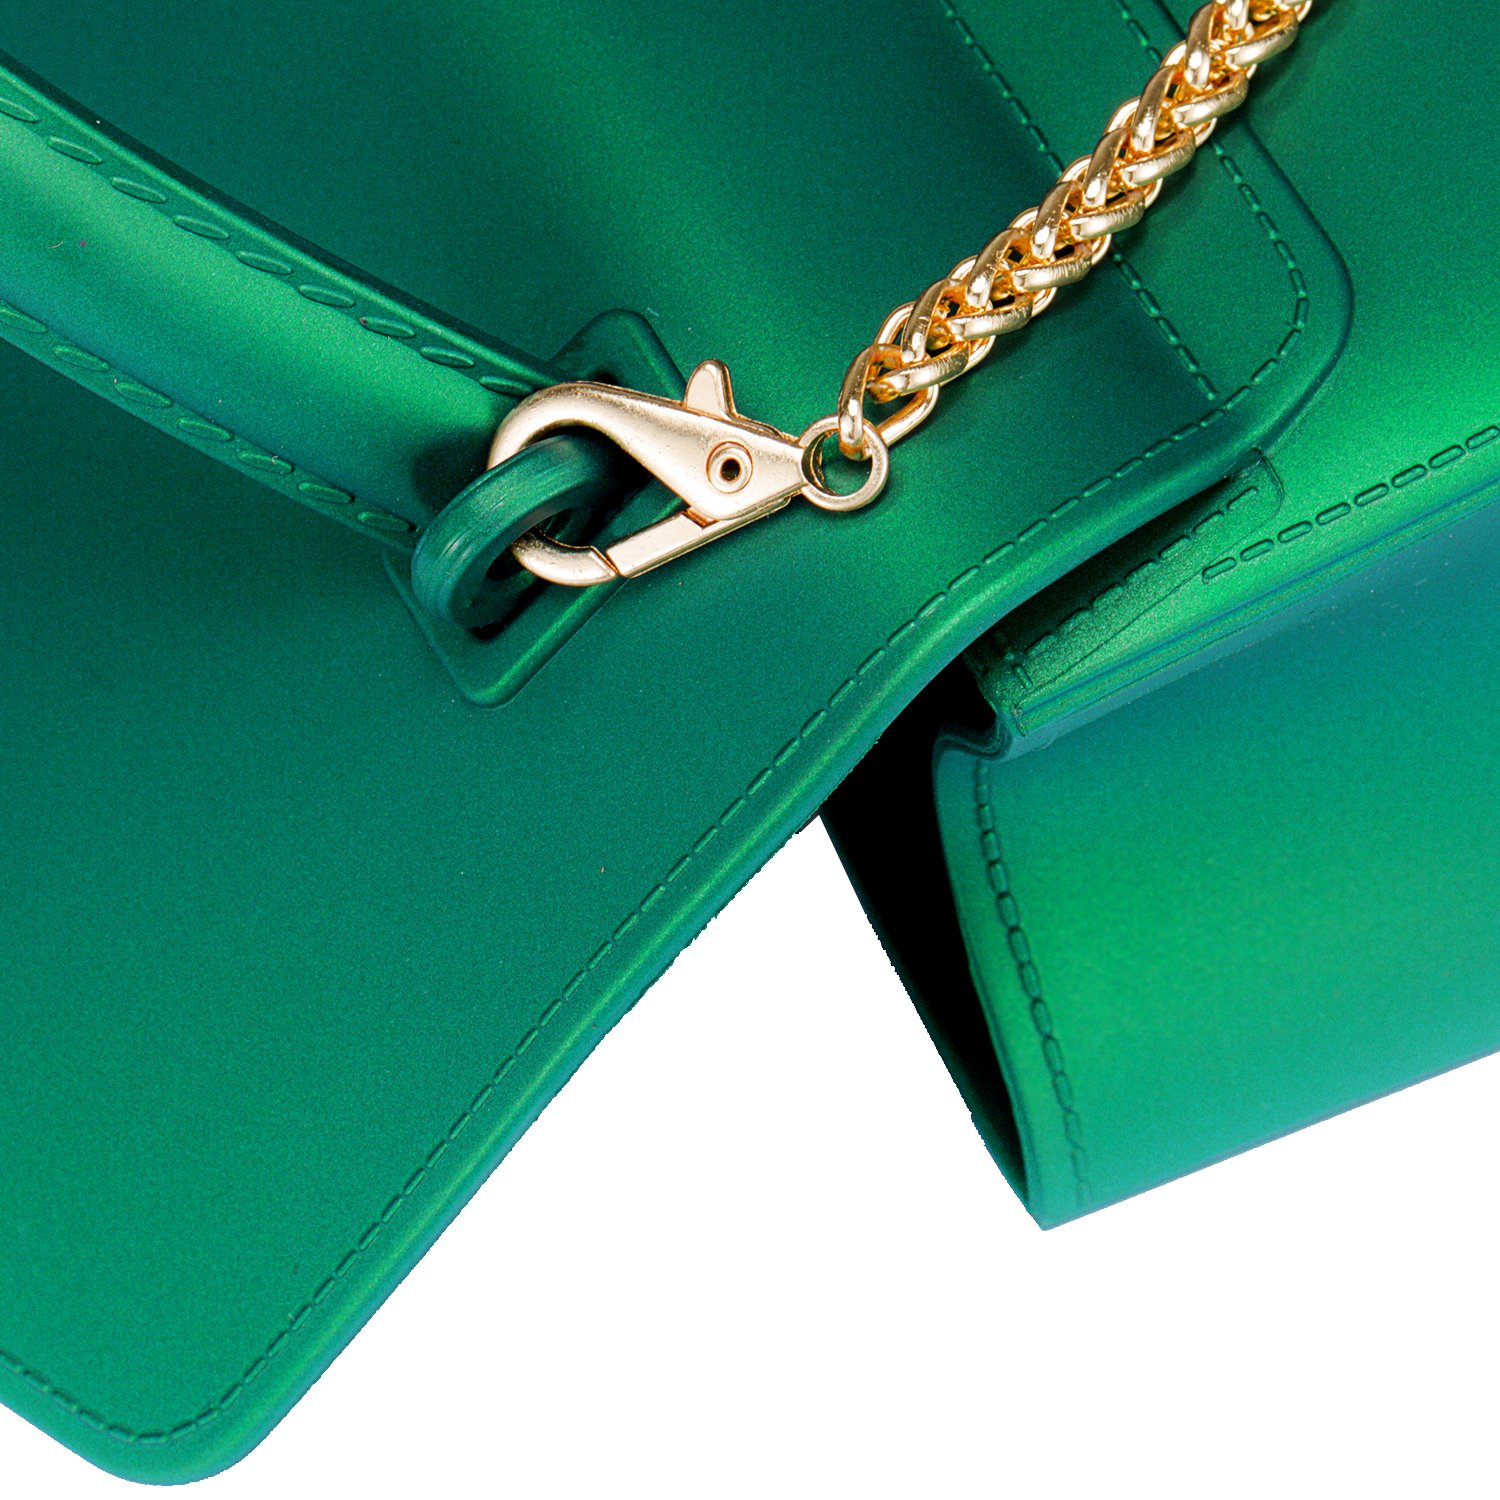 Small Top Handle Handbags Jelly Satchel Bags for Women Tote Purse - Green by Chrysansmile (Image #7)